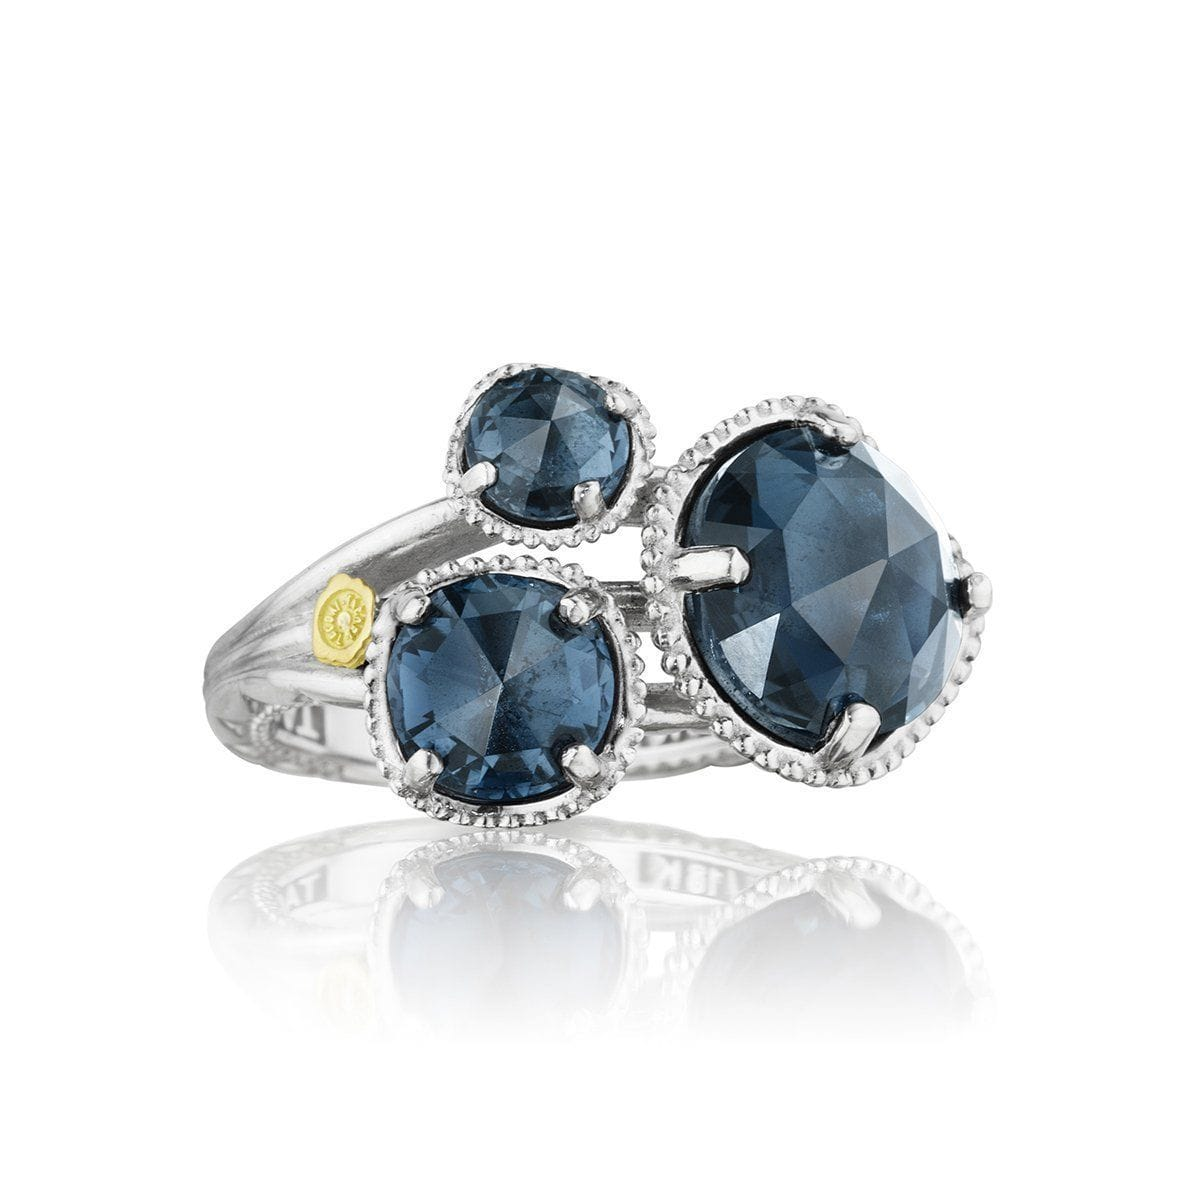 Silver 3 Stone London Blue Topaz Ring - SR13733